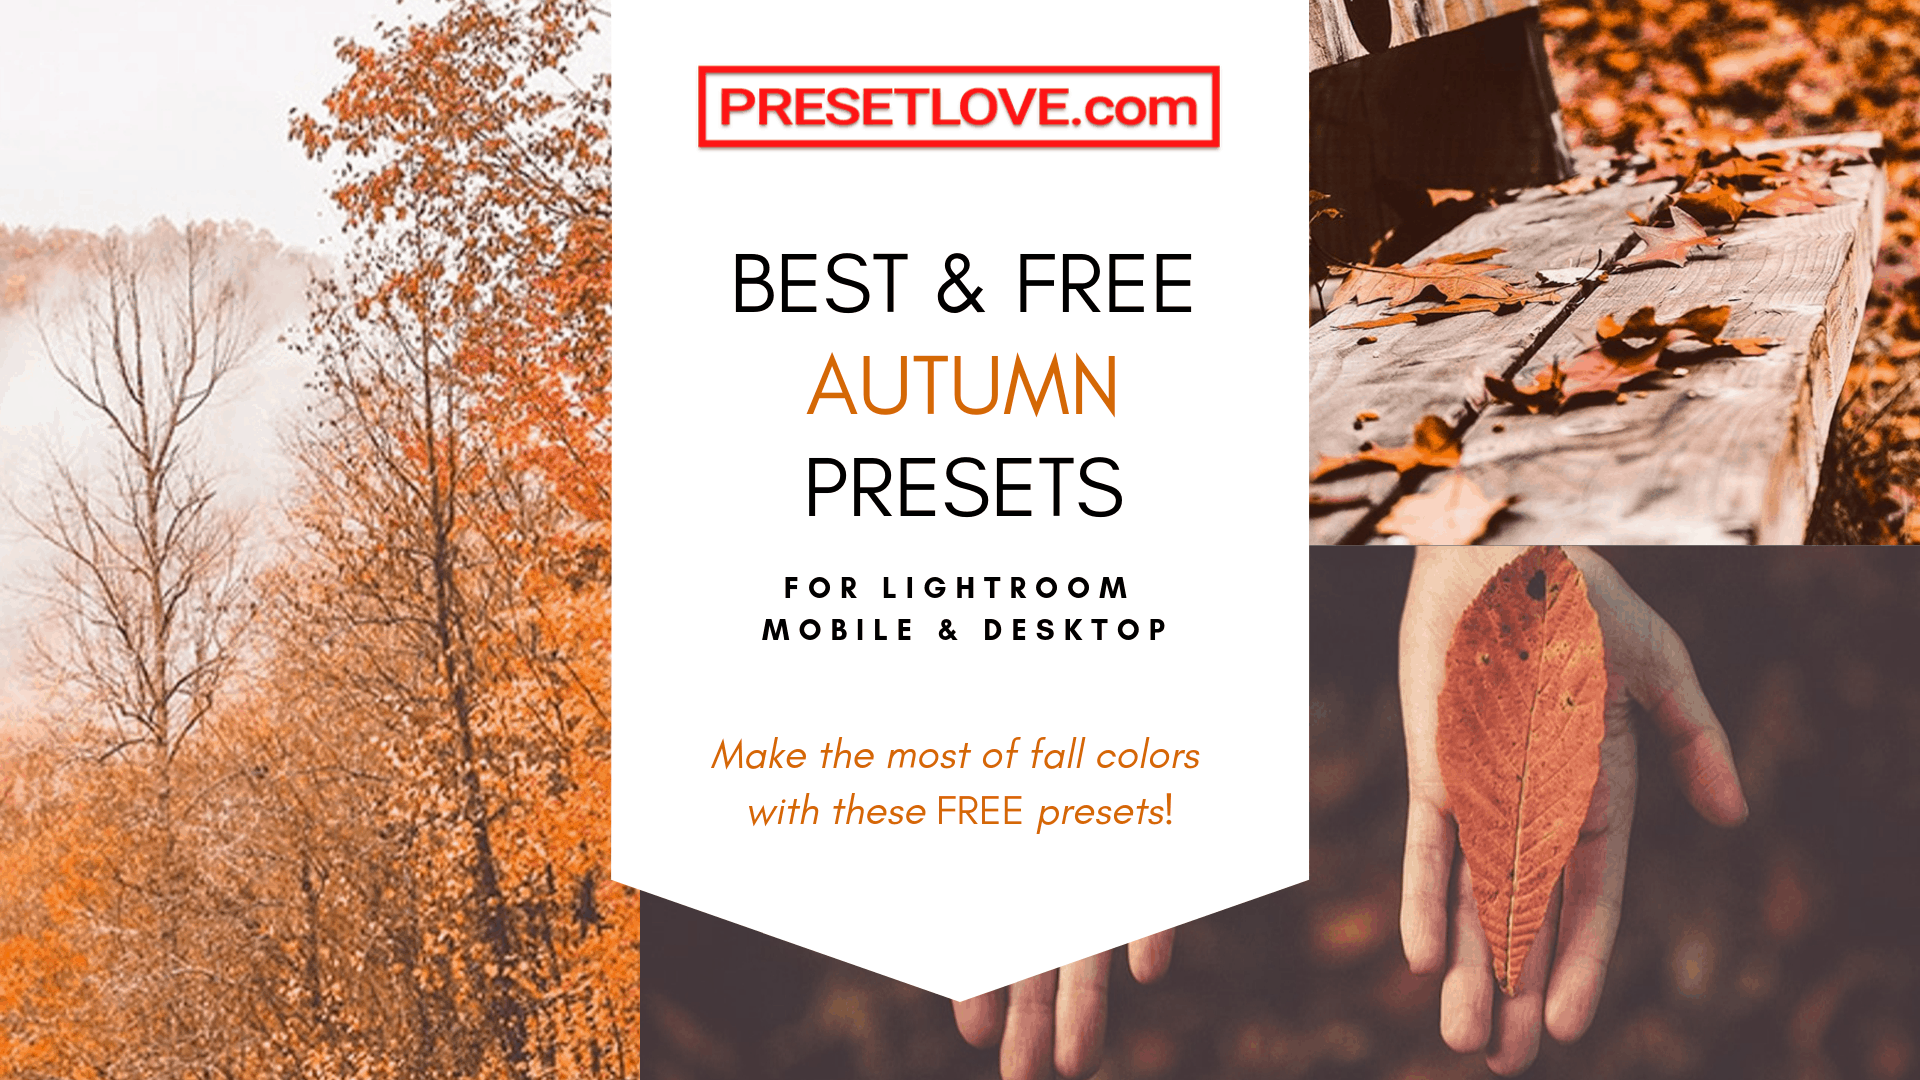 Fall Presets for Lightroom mobile and desktop